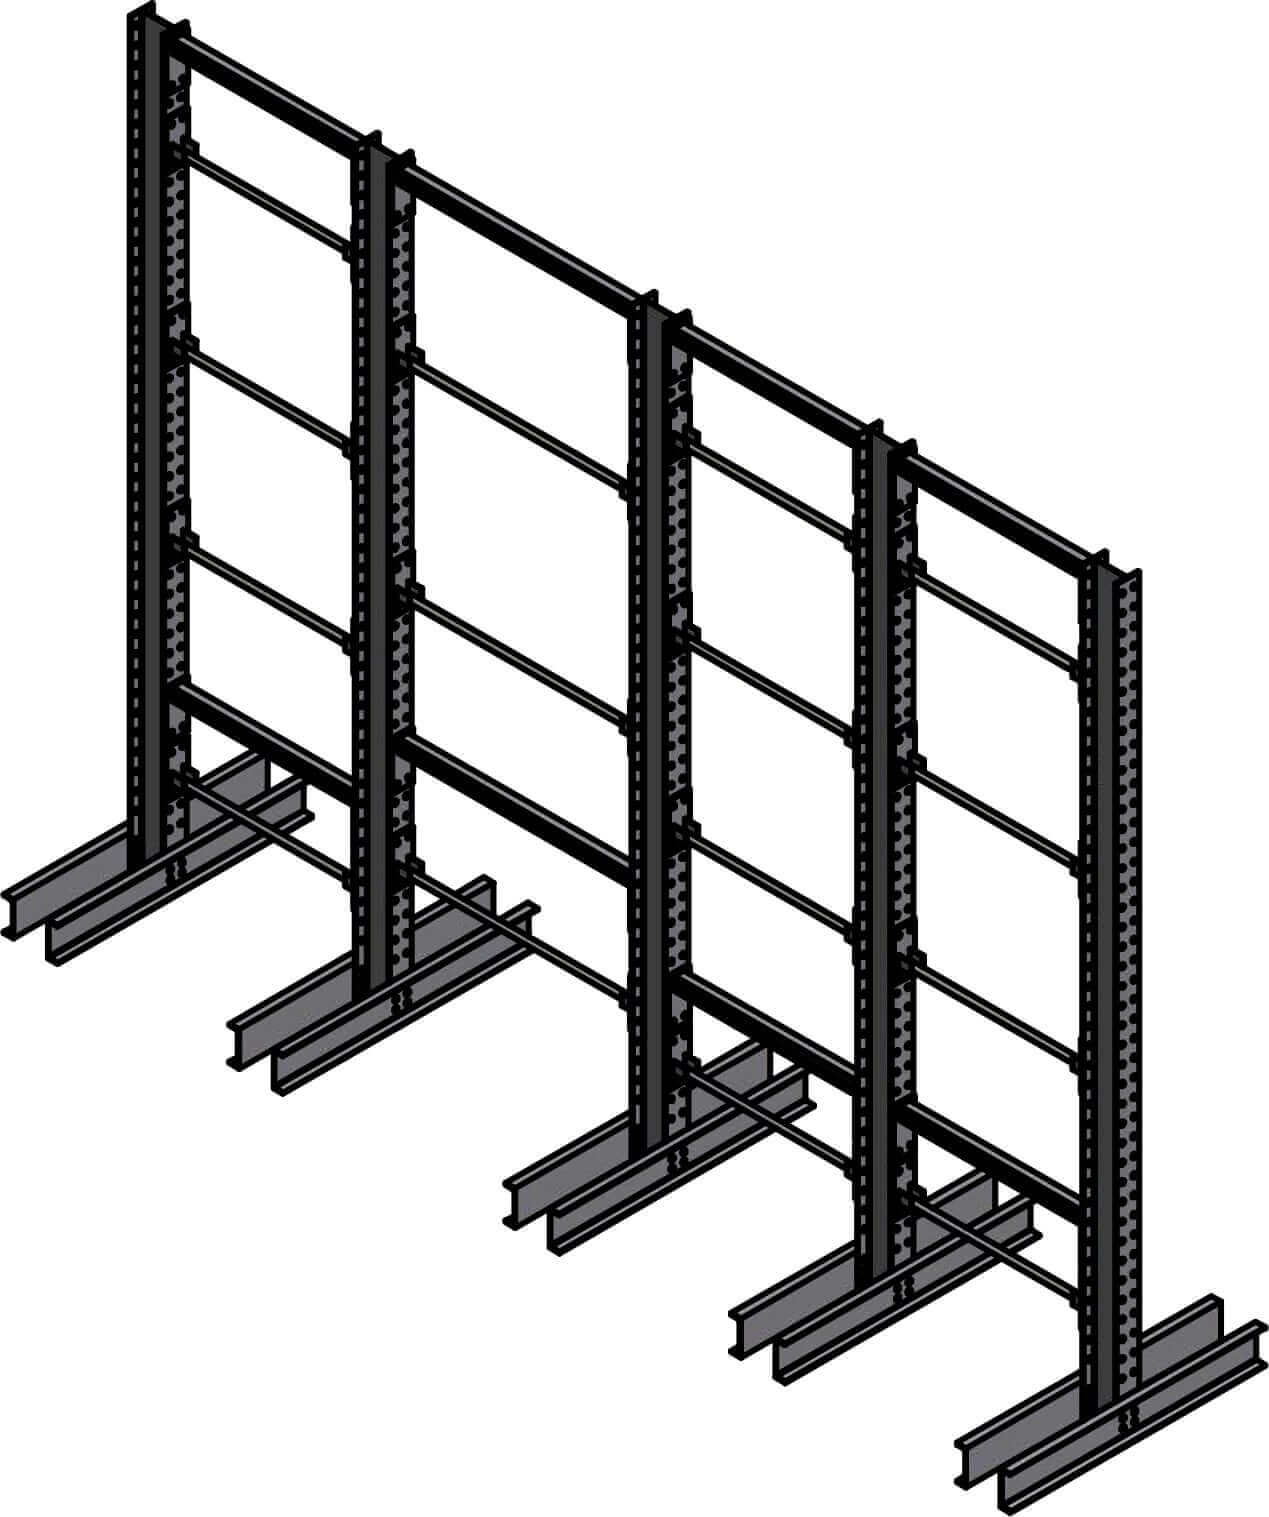 Dexco Structural I-Beam Specialized Rack Systems